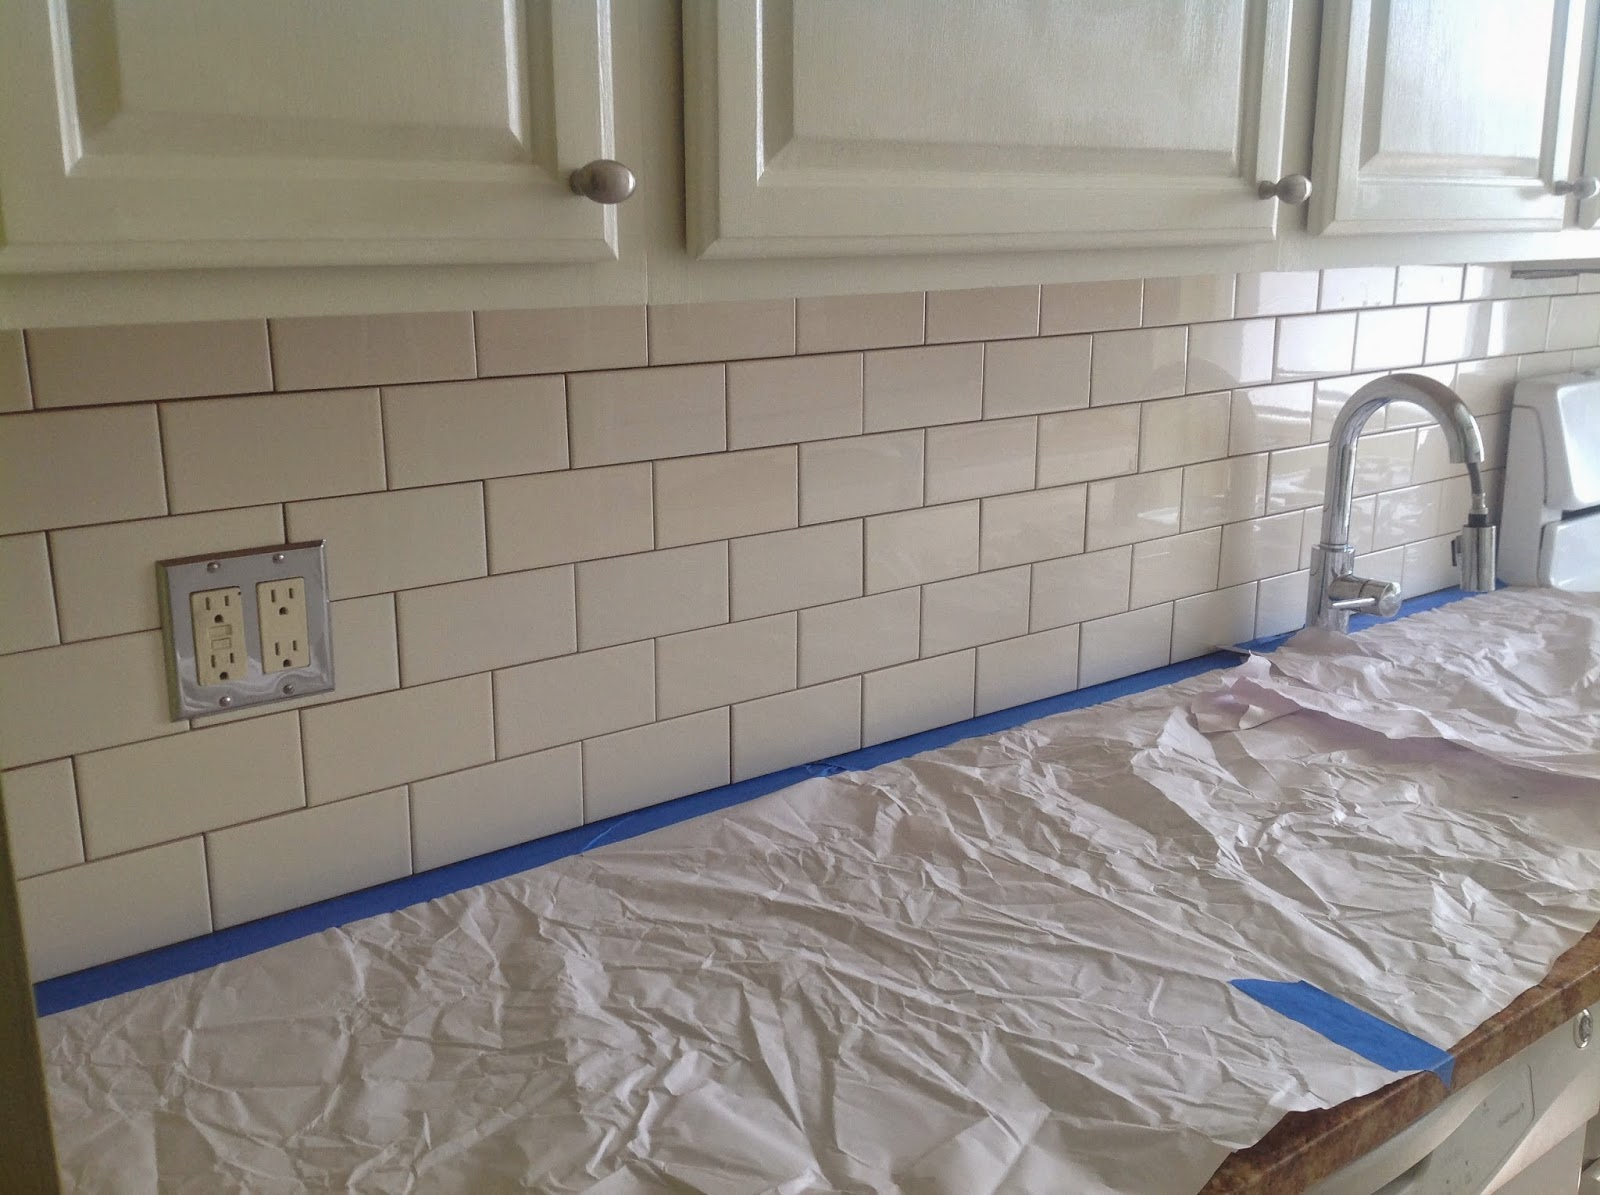 Subway Tile How To Grout Subway Tile Backsplash